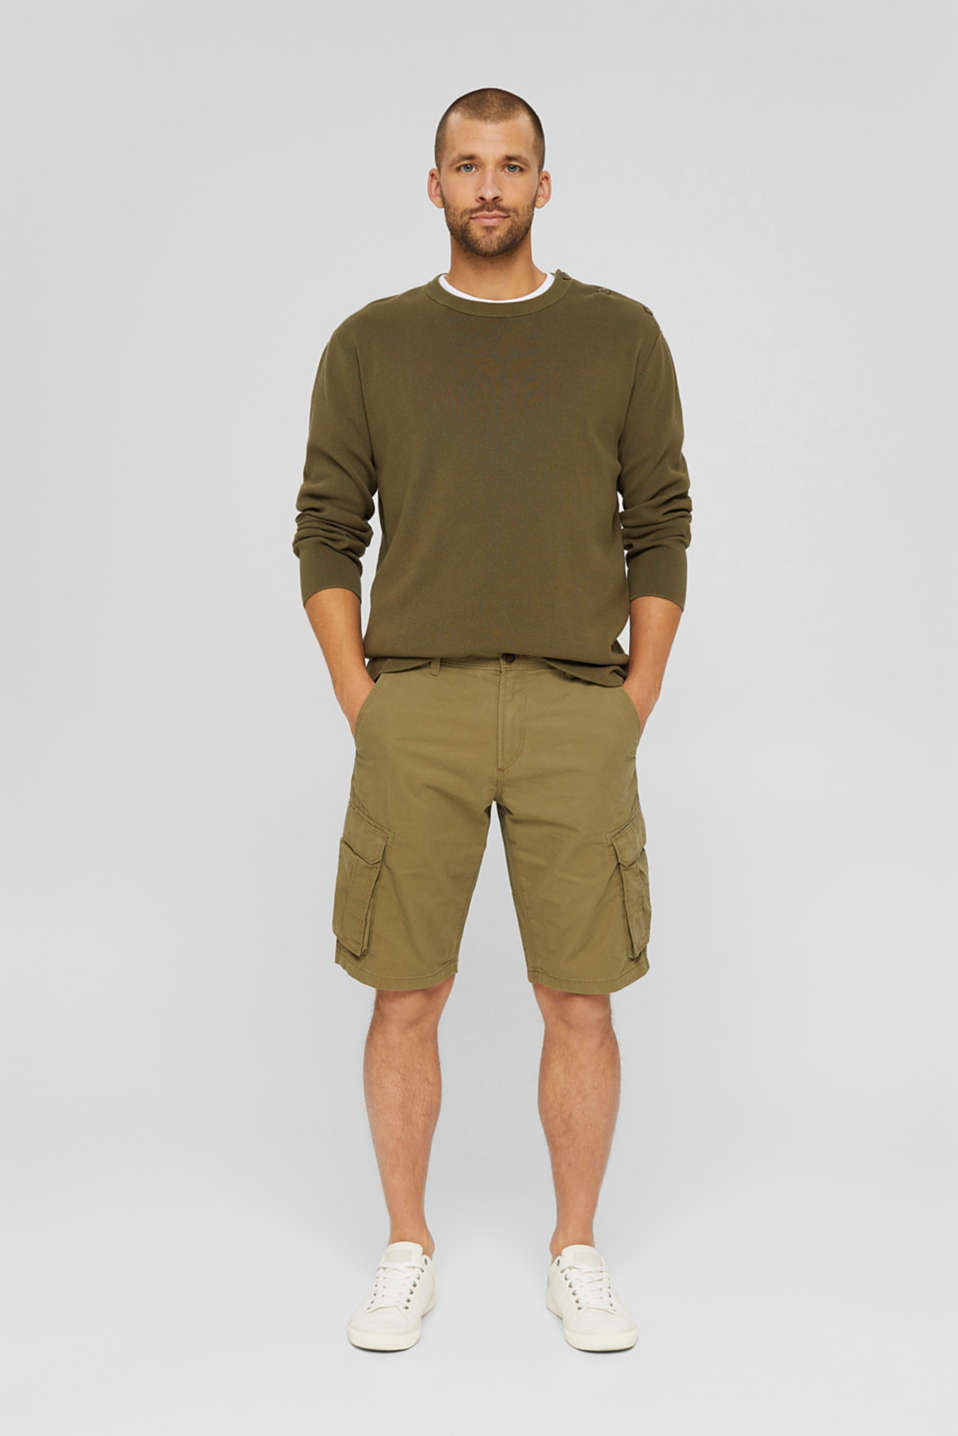 Shorts woven Relaxed fit, OLIVE, detail image number 1